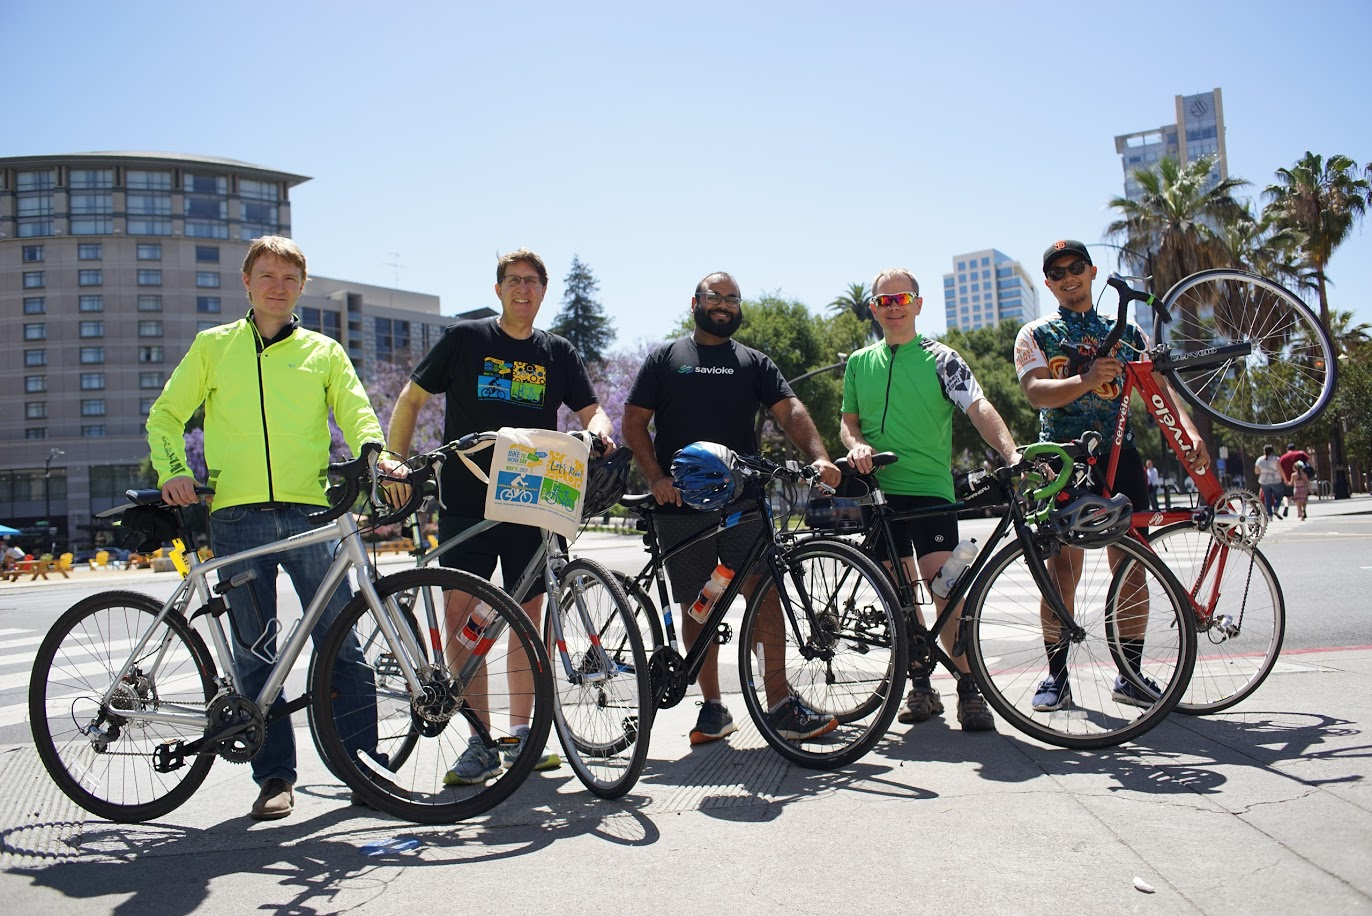 Members of the Relayers Bike Team (from left to right) Phil Herget, Keith Berte, Vimal Parsotam, Clemens Drews, and Kevin Canoy